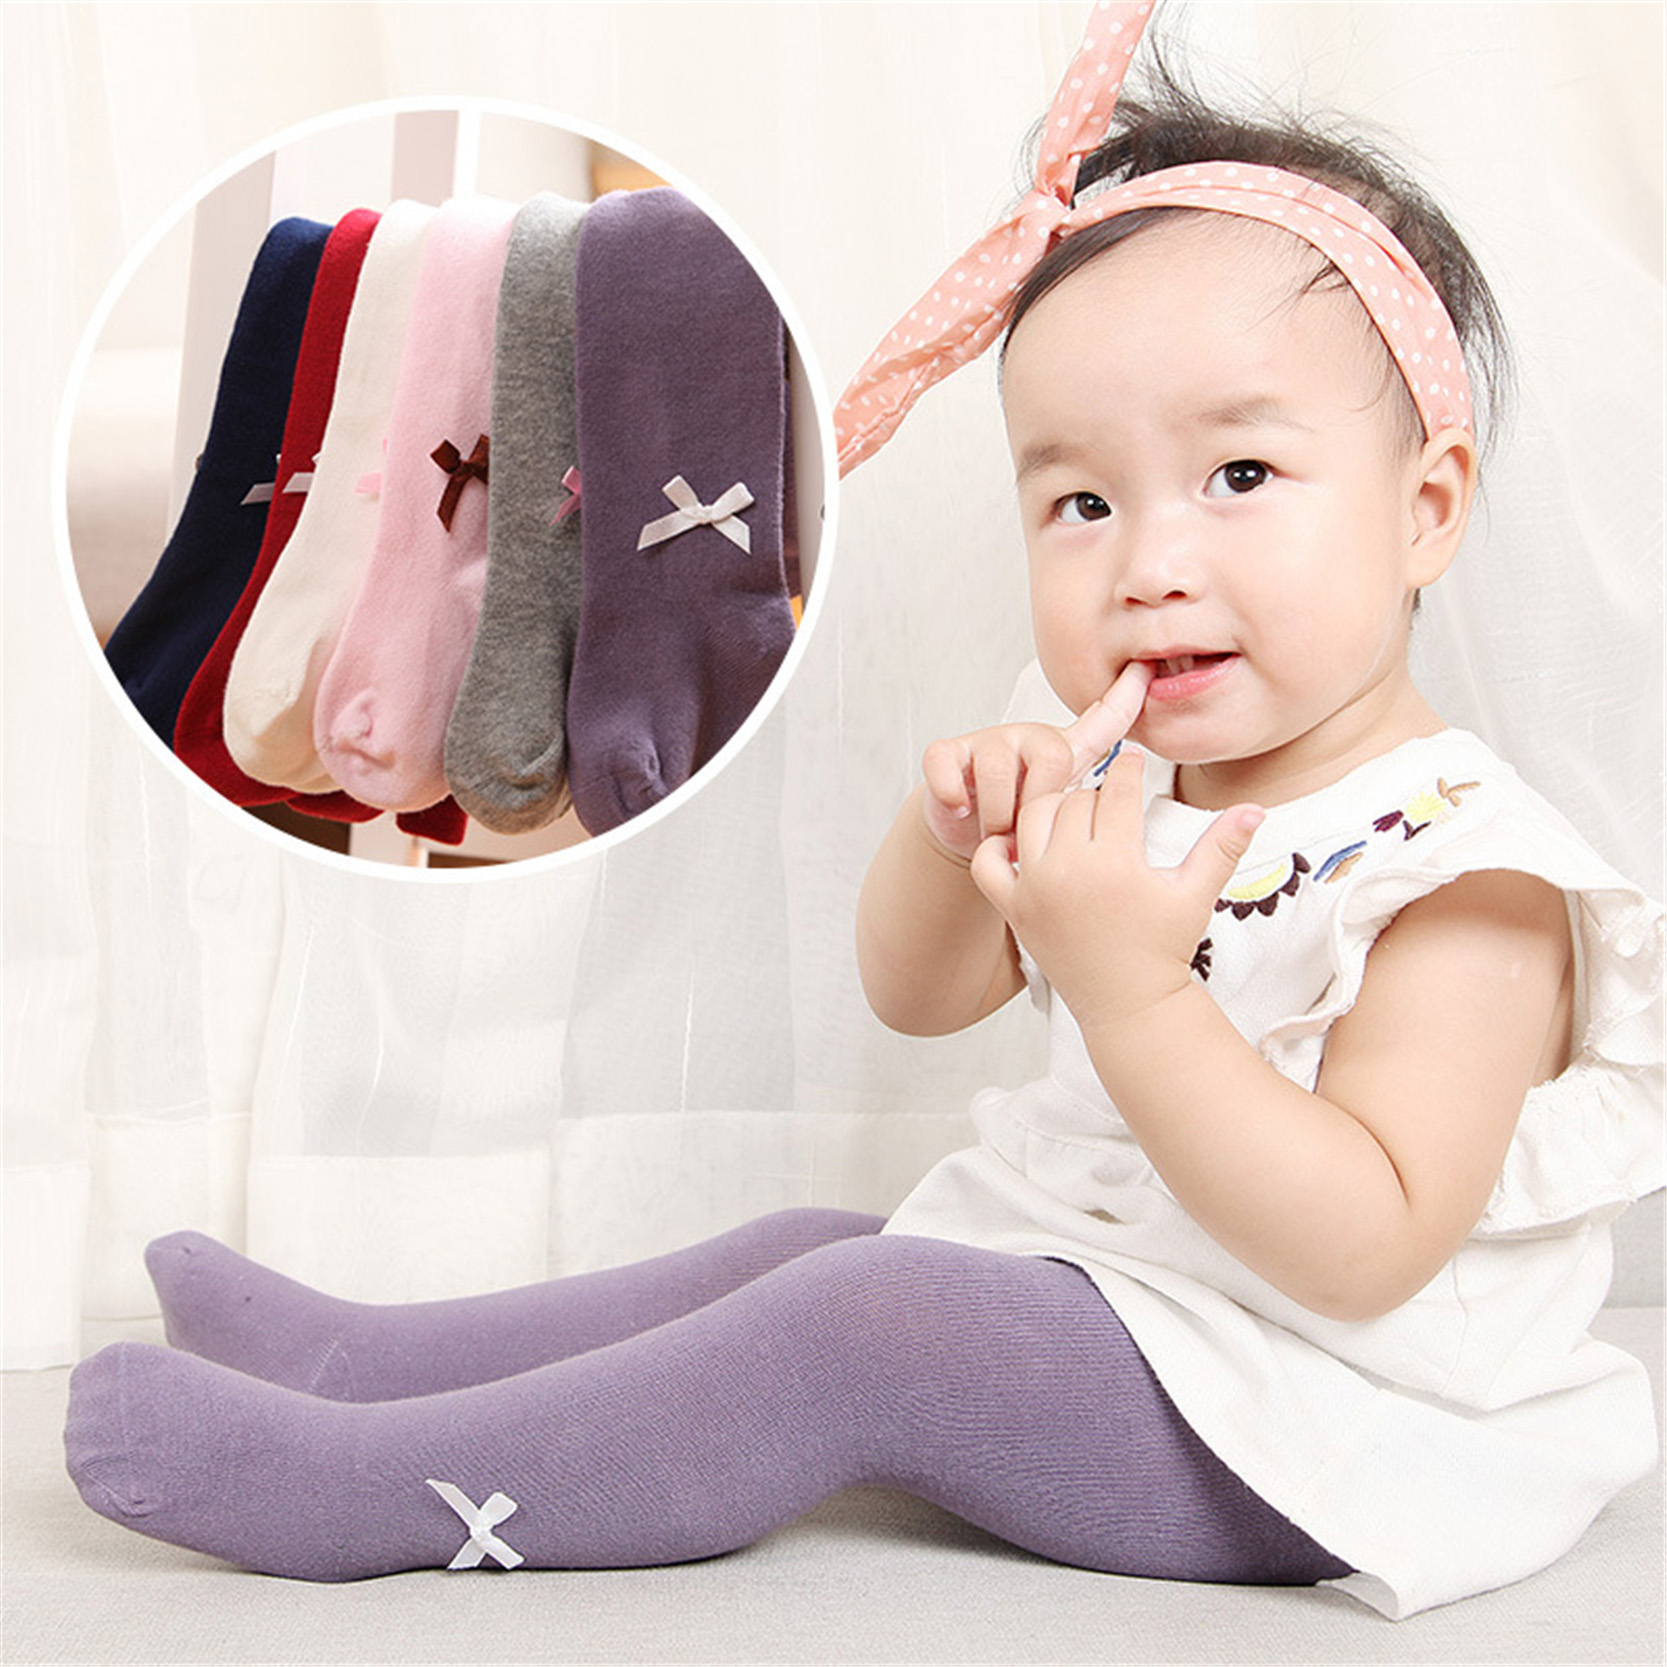 купить Cotton Baby Girl Tights Pantyhose Toddler Tights For Girls Autumn Solid Color Bow Baby Stockings по цене 161.83 рублей